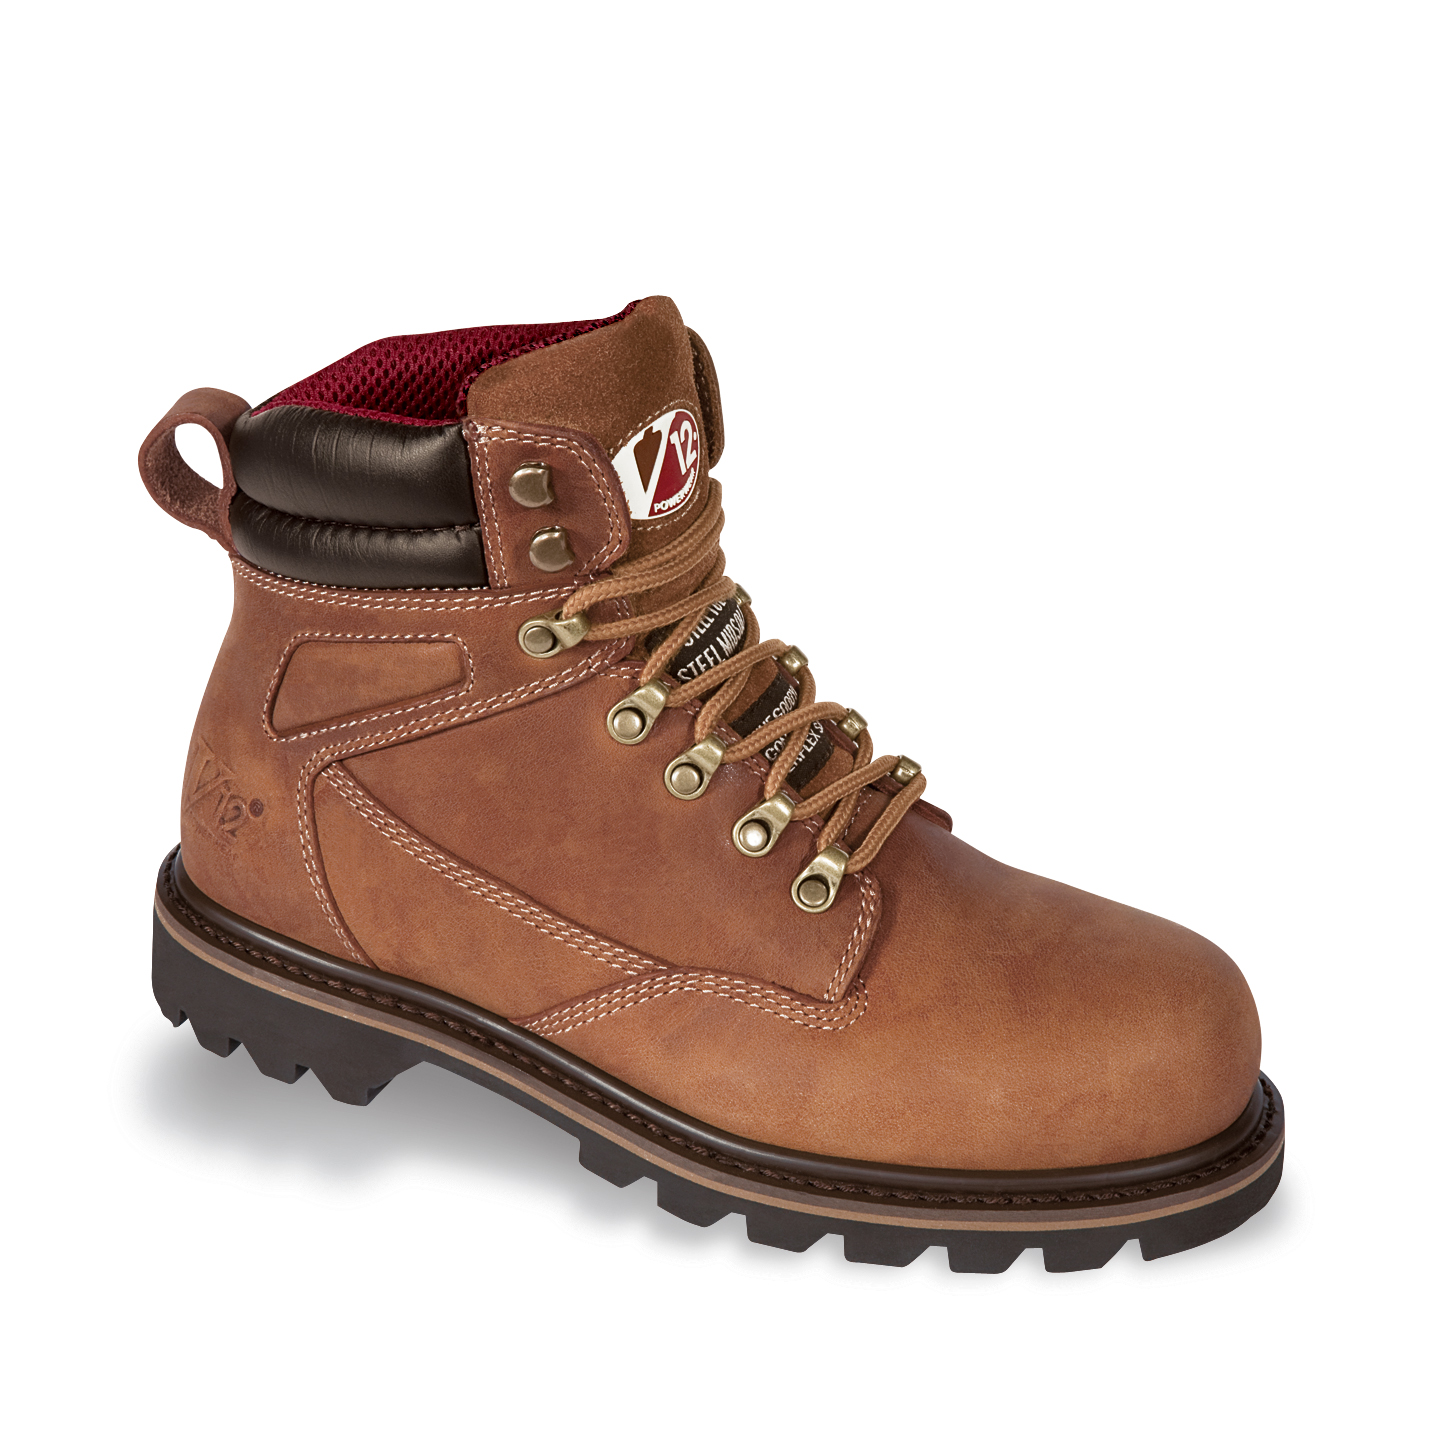 V12 Mohawk Safety Work Boots Brown Leather Steel Toe Cap